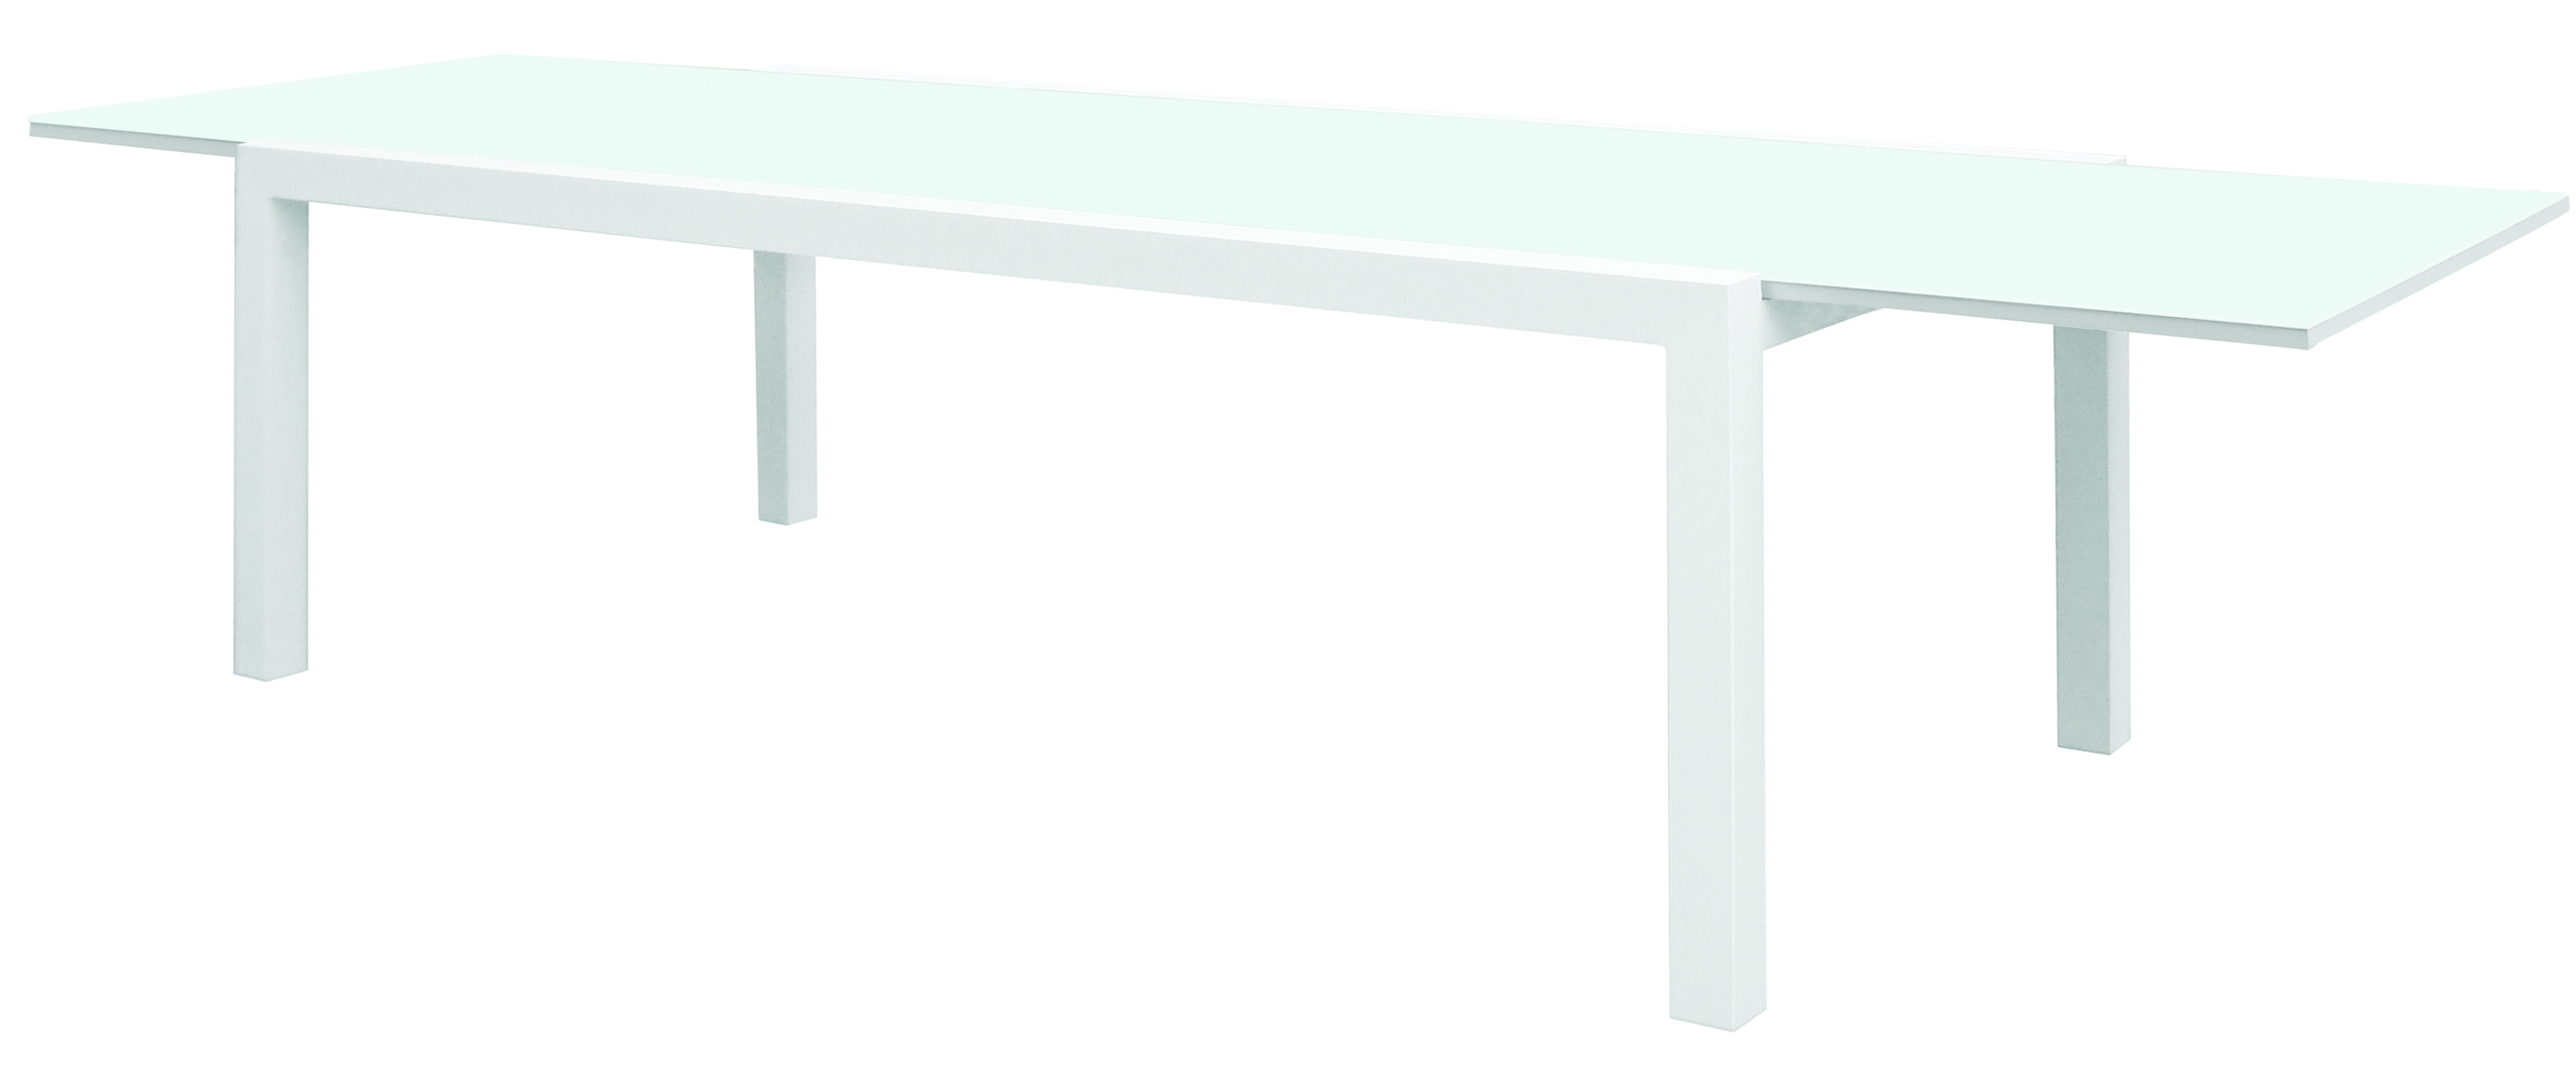 The Grazia Extendable Dining table